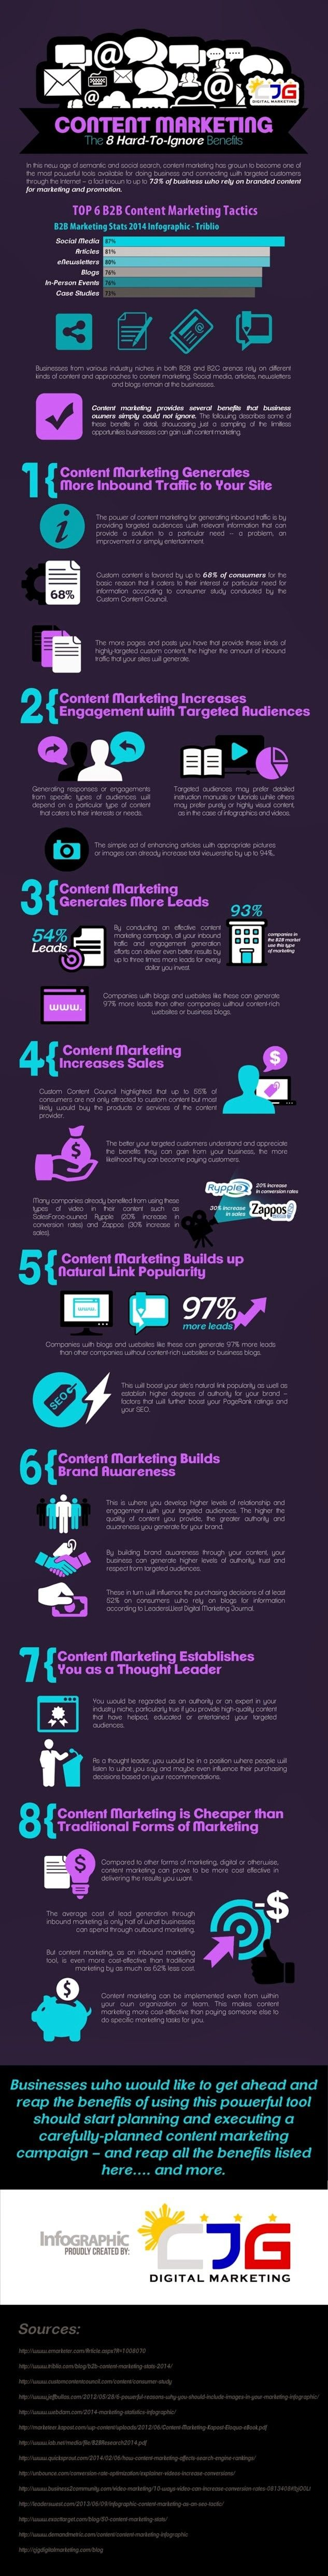 8 Hard-to-ignore Content Marketing Benefits #infographic #contentstrategy